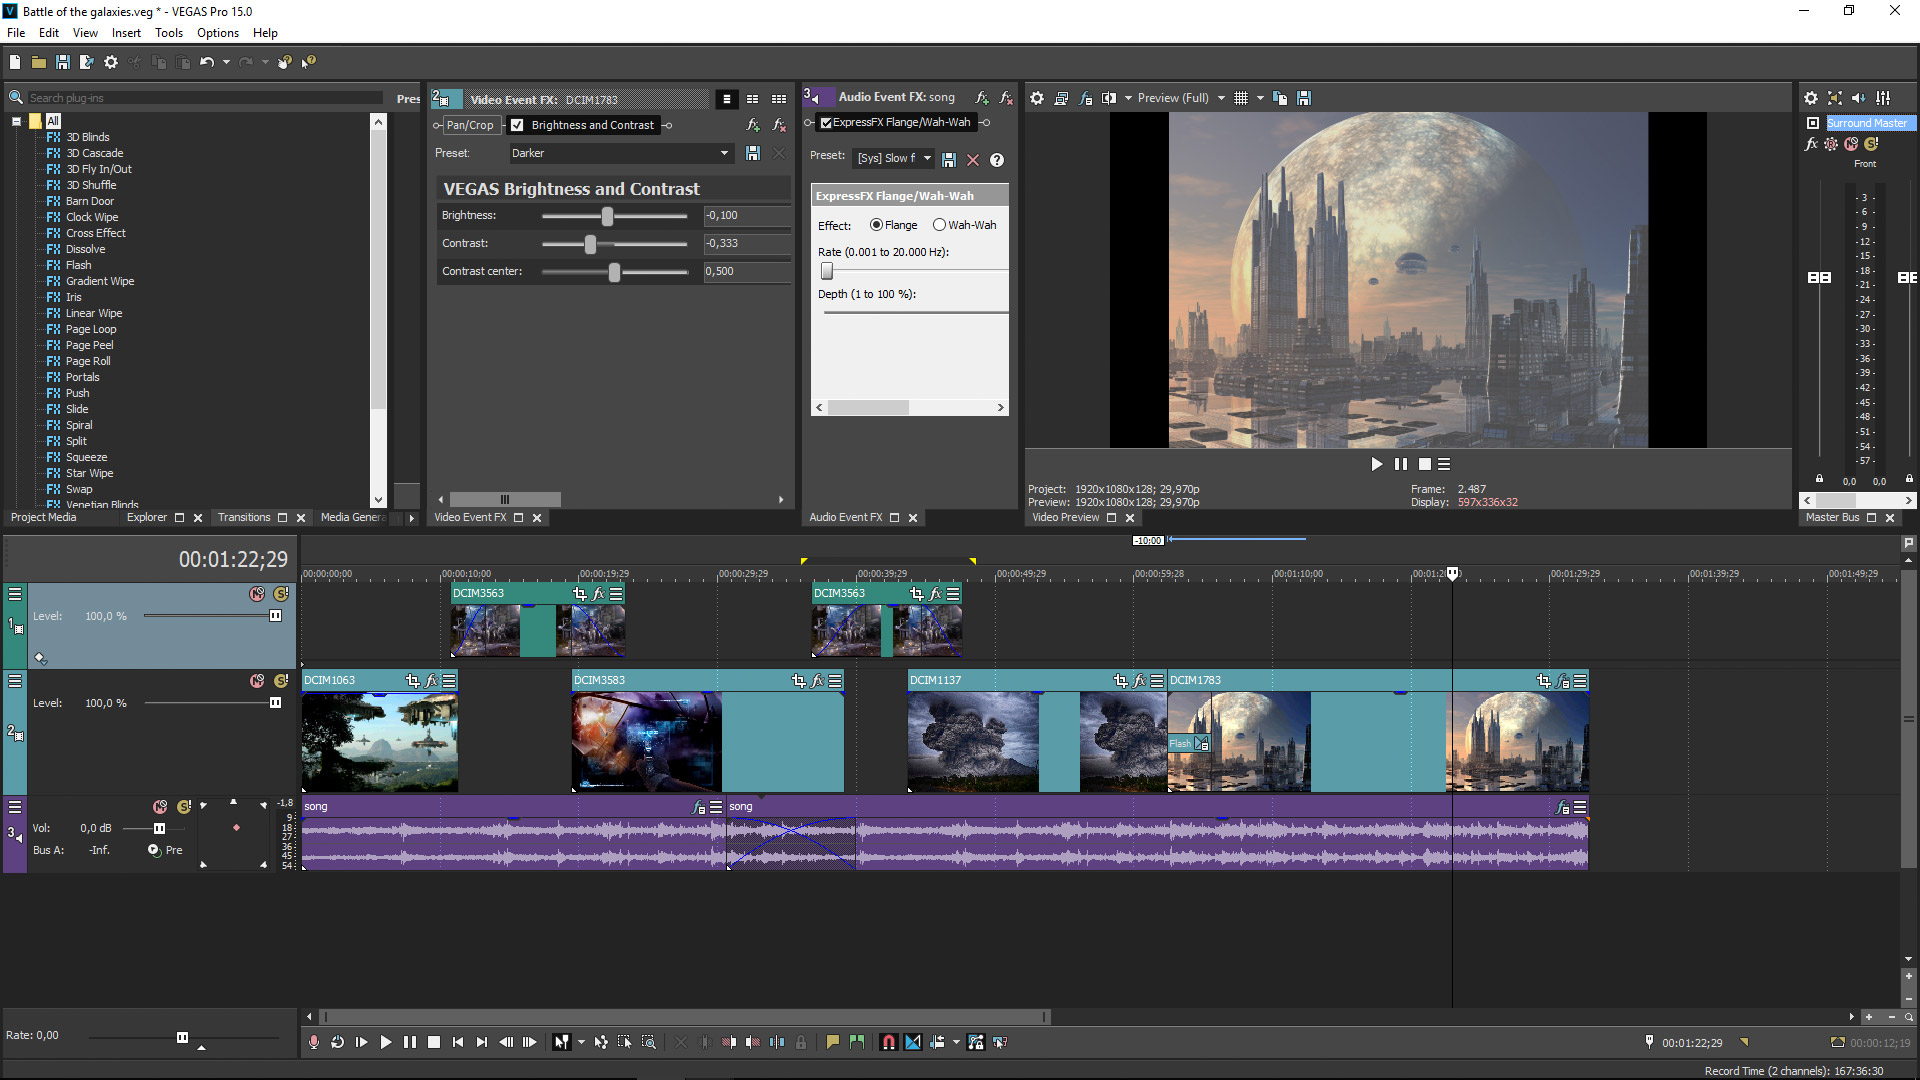 sony vegas pro 15 free download full version crack